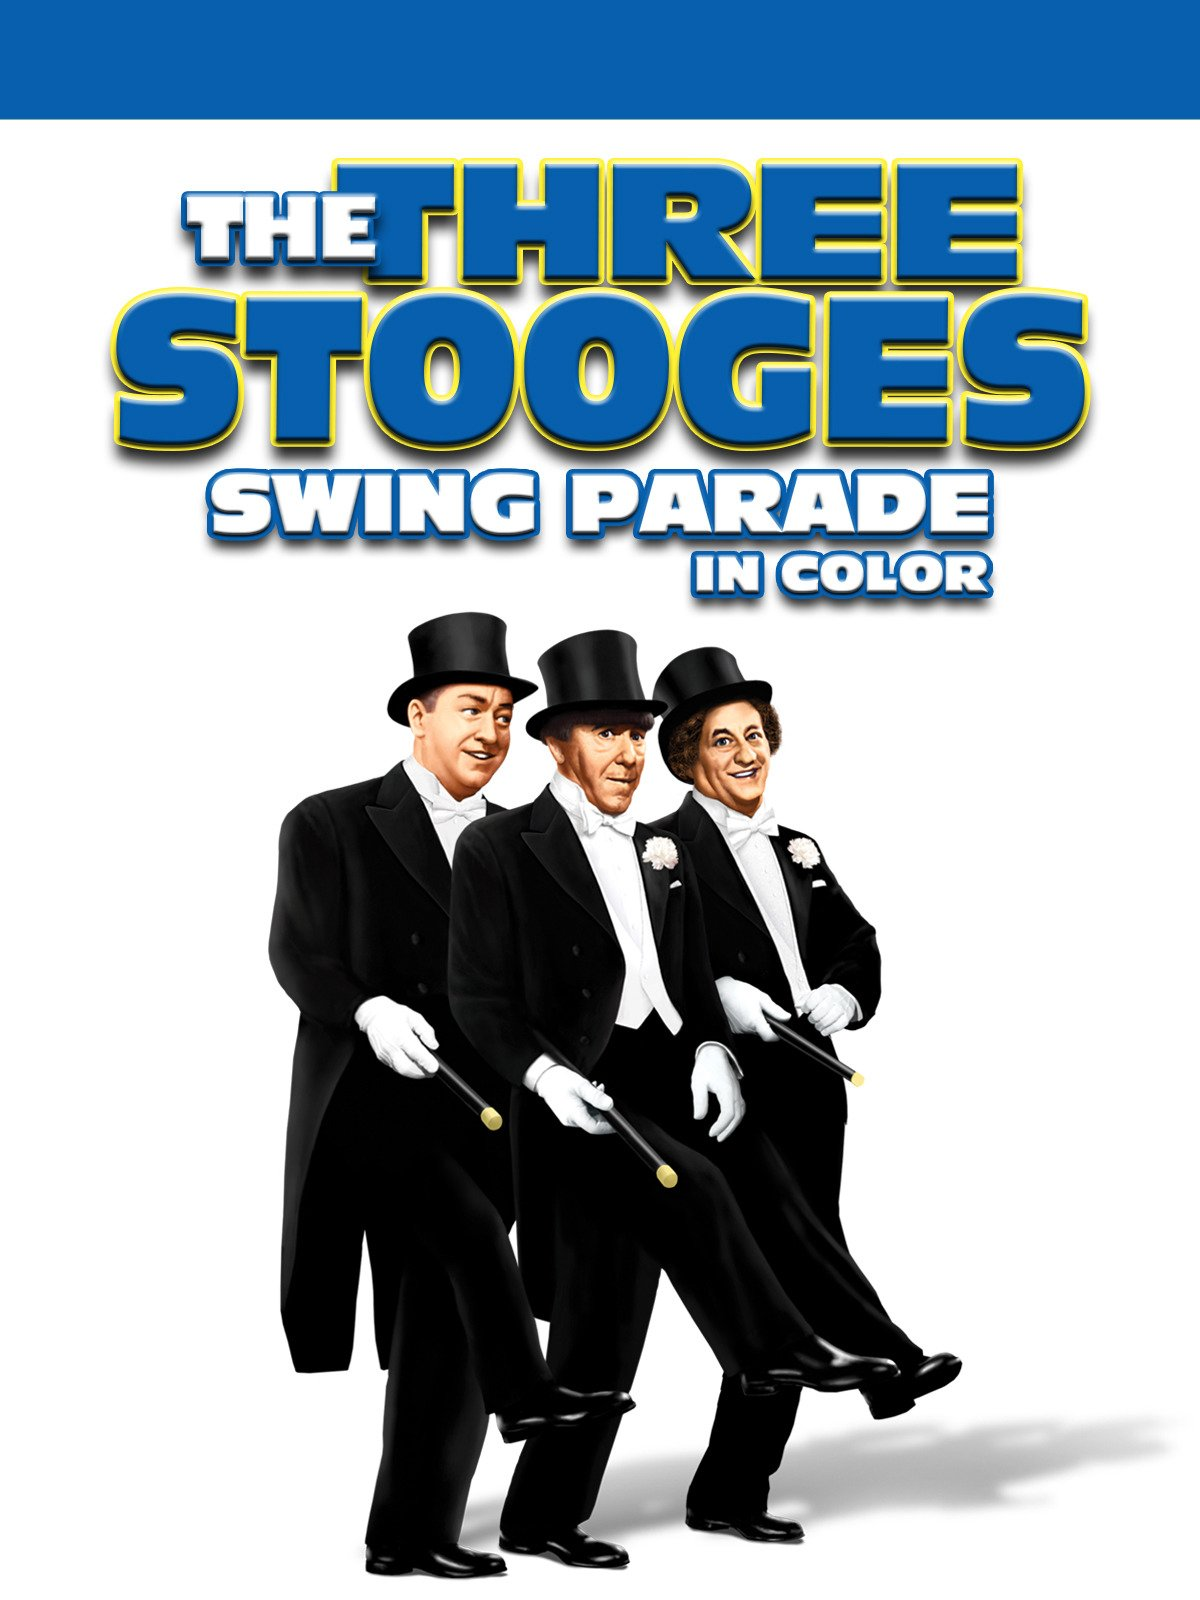 Three Stooges: Swing Parade (In Color) on Amazon Prime Video UK